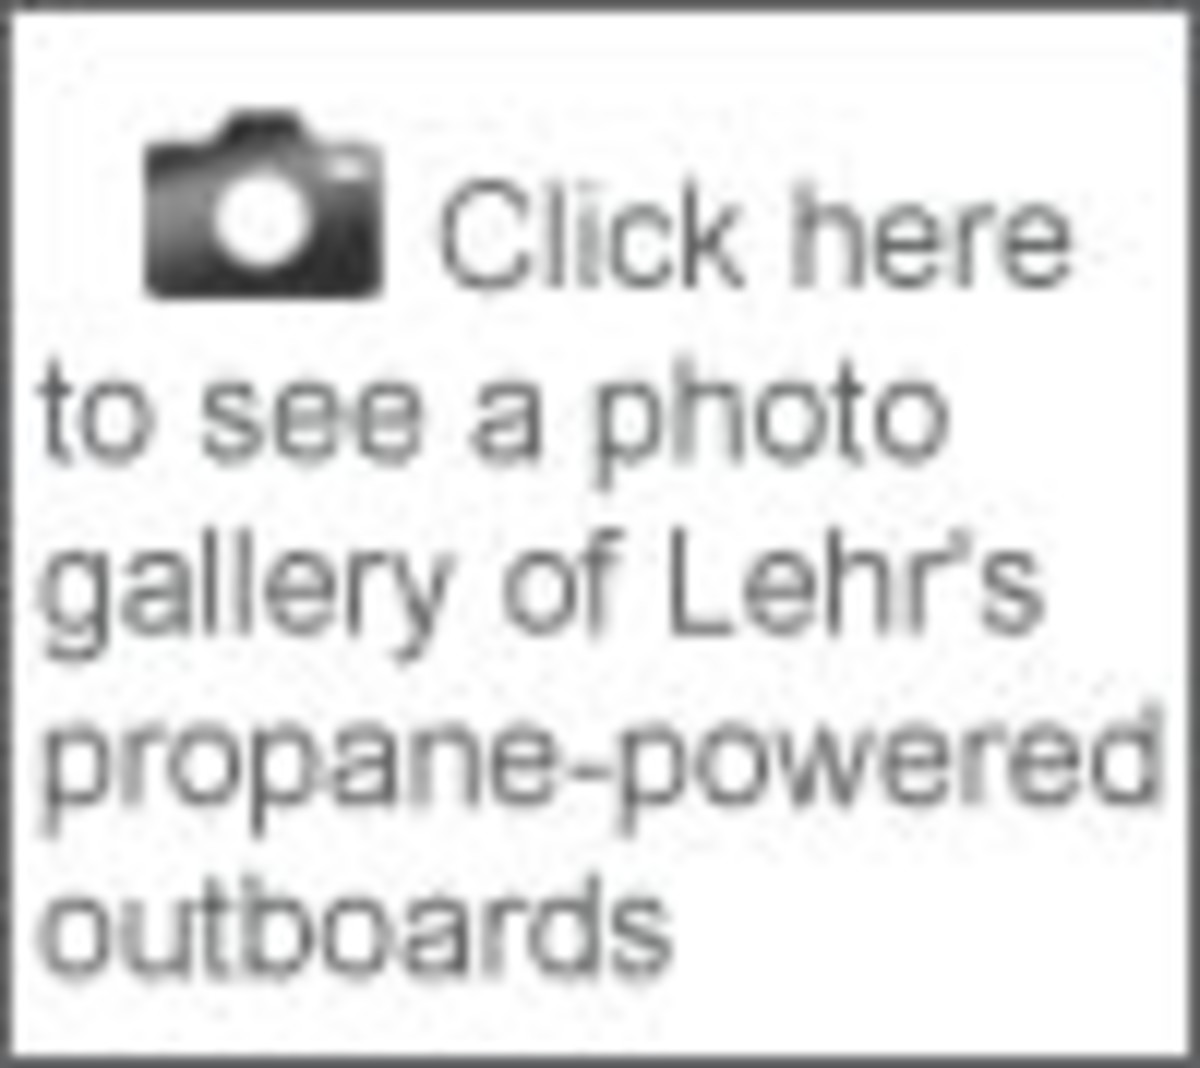 Click here to see a photo gallery of Lehr's propane-powered outboards